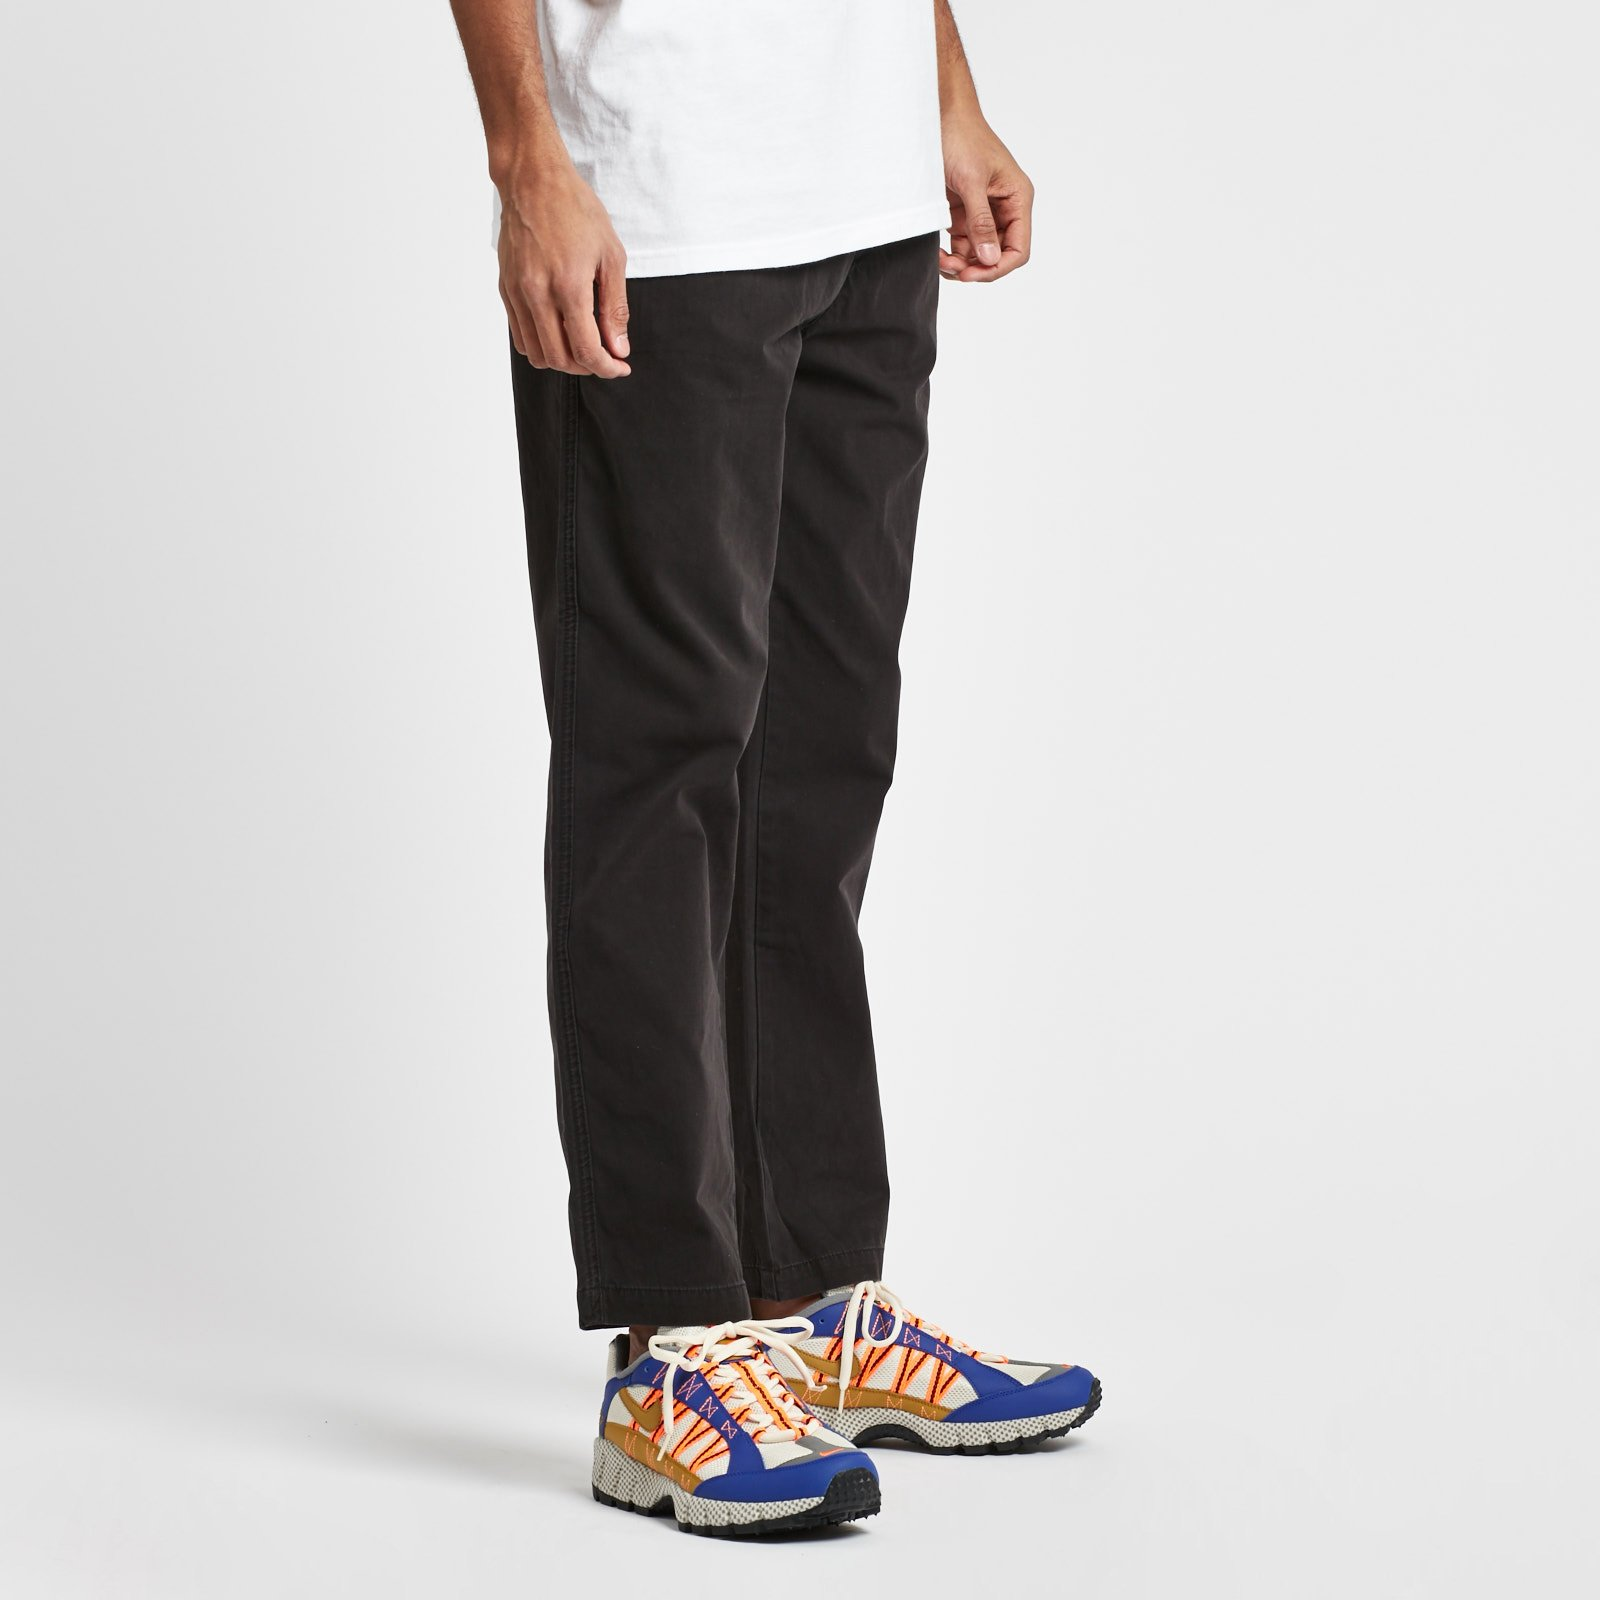 389e85f6f75 Stussy Brushed Beach Pant - 116345-0001 - Sneakersnstuff | sneakers ...